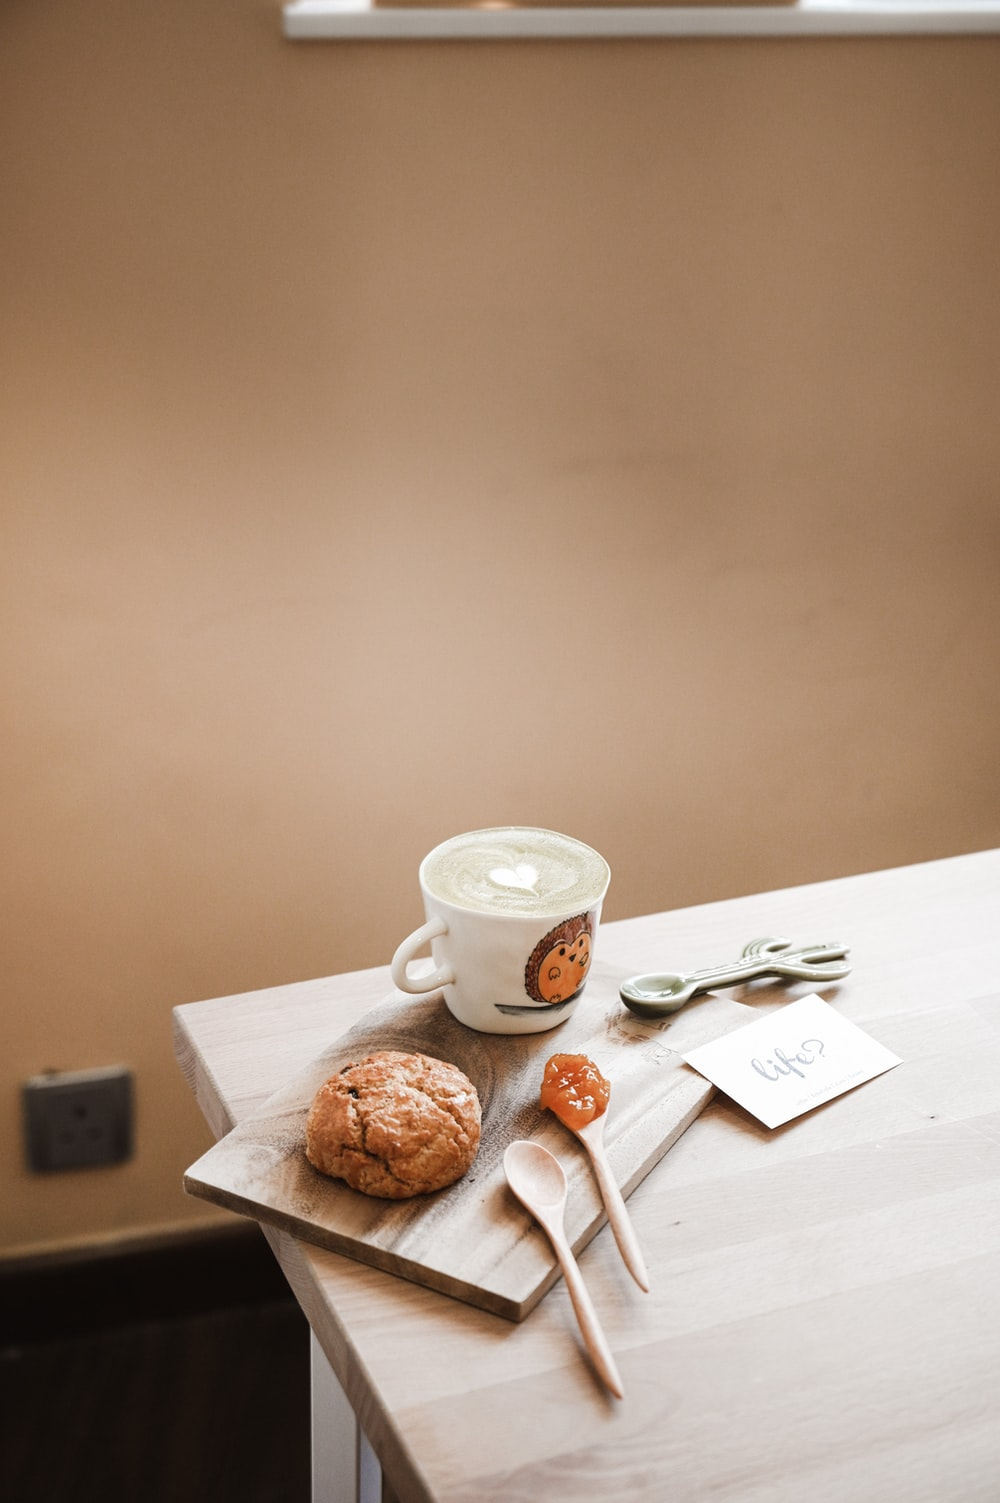 white ceramic teacup on saucer beside bread on table